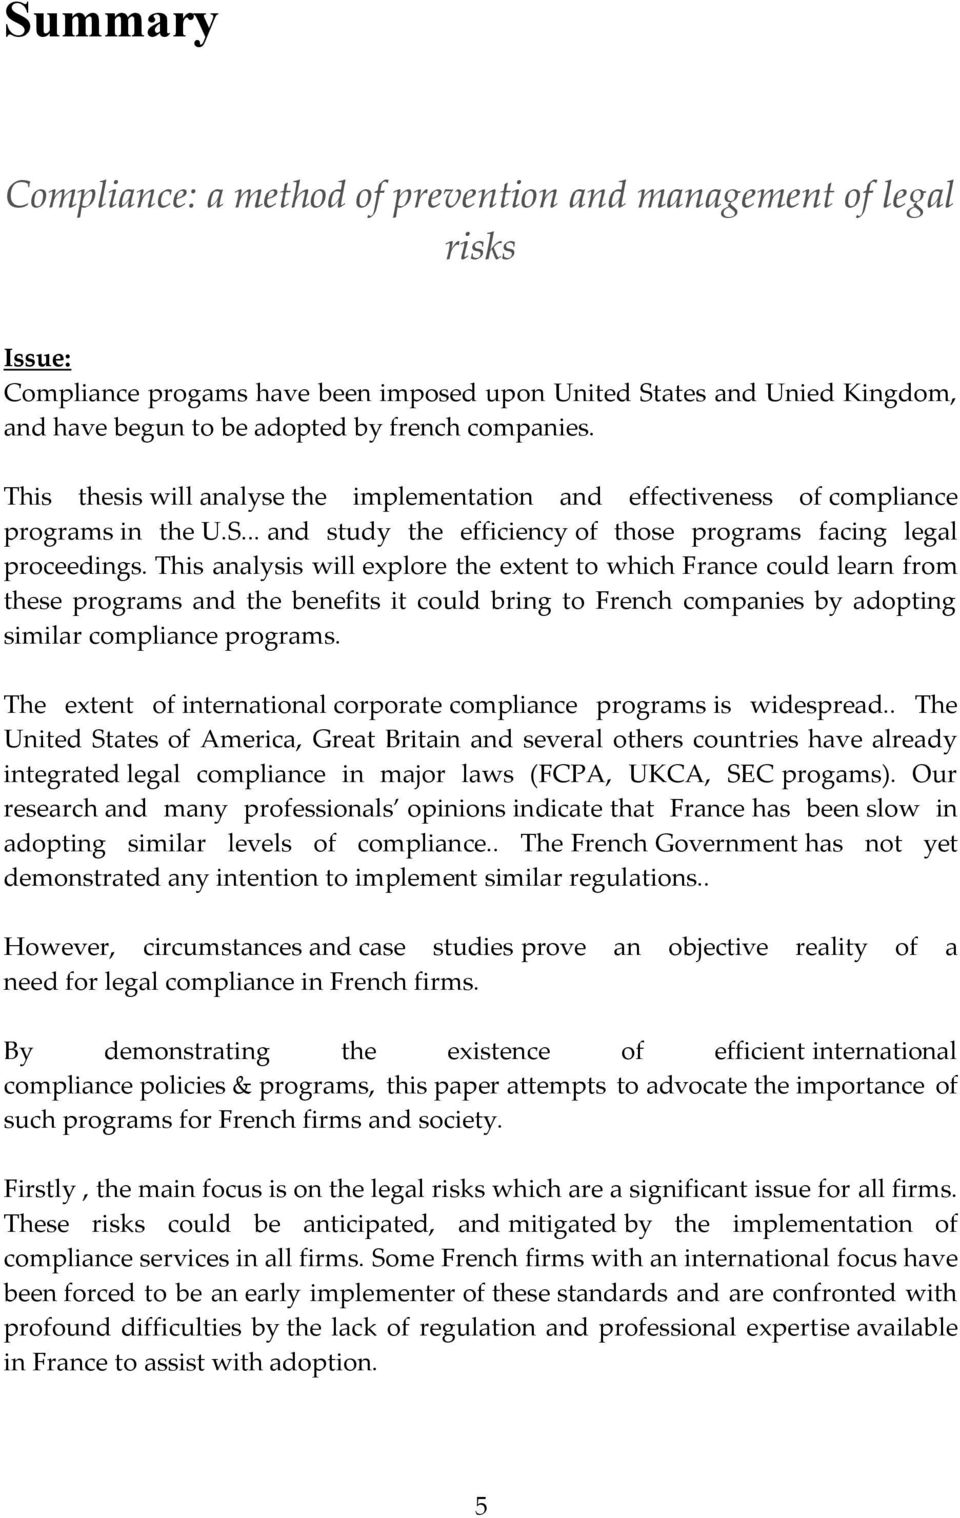 This analysis will explore the extent to which France could learn from these programs and the benefits it could bring to French companies by adopting similar compliance programs.